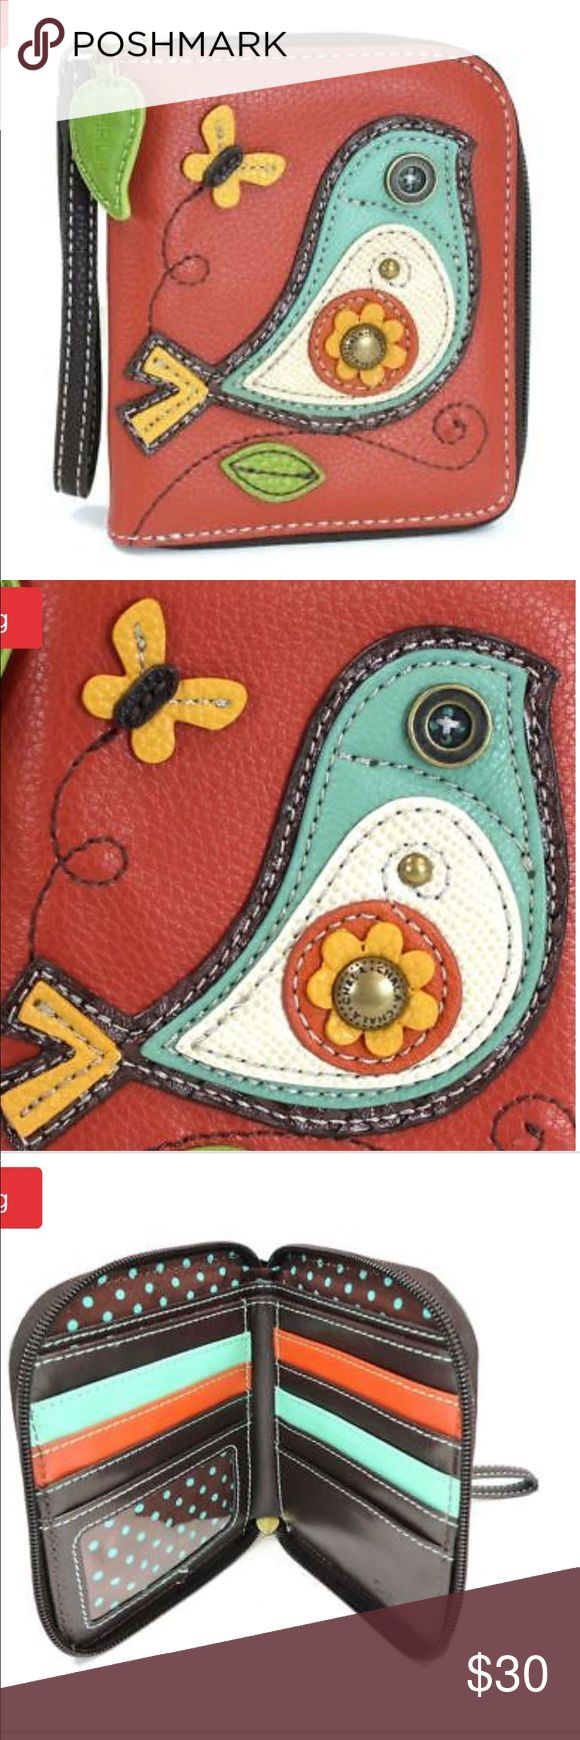 """* 1 DAY SALE* NEW zip around wallet / Wristlet BRAND NEW Chala Bird Brick Red zip around wallet / Wristlet. Stylish, fun, and functional. * The by a beautiful detailed bird. * LOTS of slots for your cards and cash. * one clear slot for photo ID. * Back zipper pocket for coins. Material: Faux Leather. Color: Brick Red. Approx. Measurements 5""""x 5"""" x 5.5. Designed in California. This is such a beautiful piece. I'm usually open to offer but I'm firm on this piece. Great for yourself or a present…"""